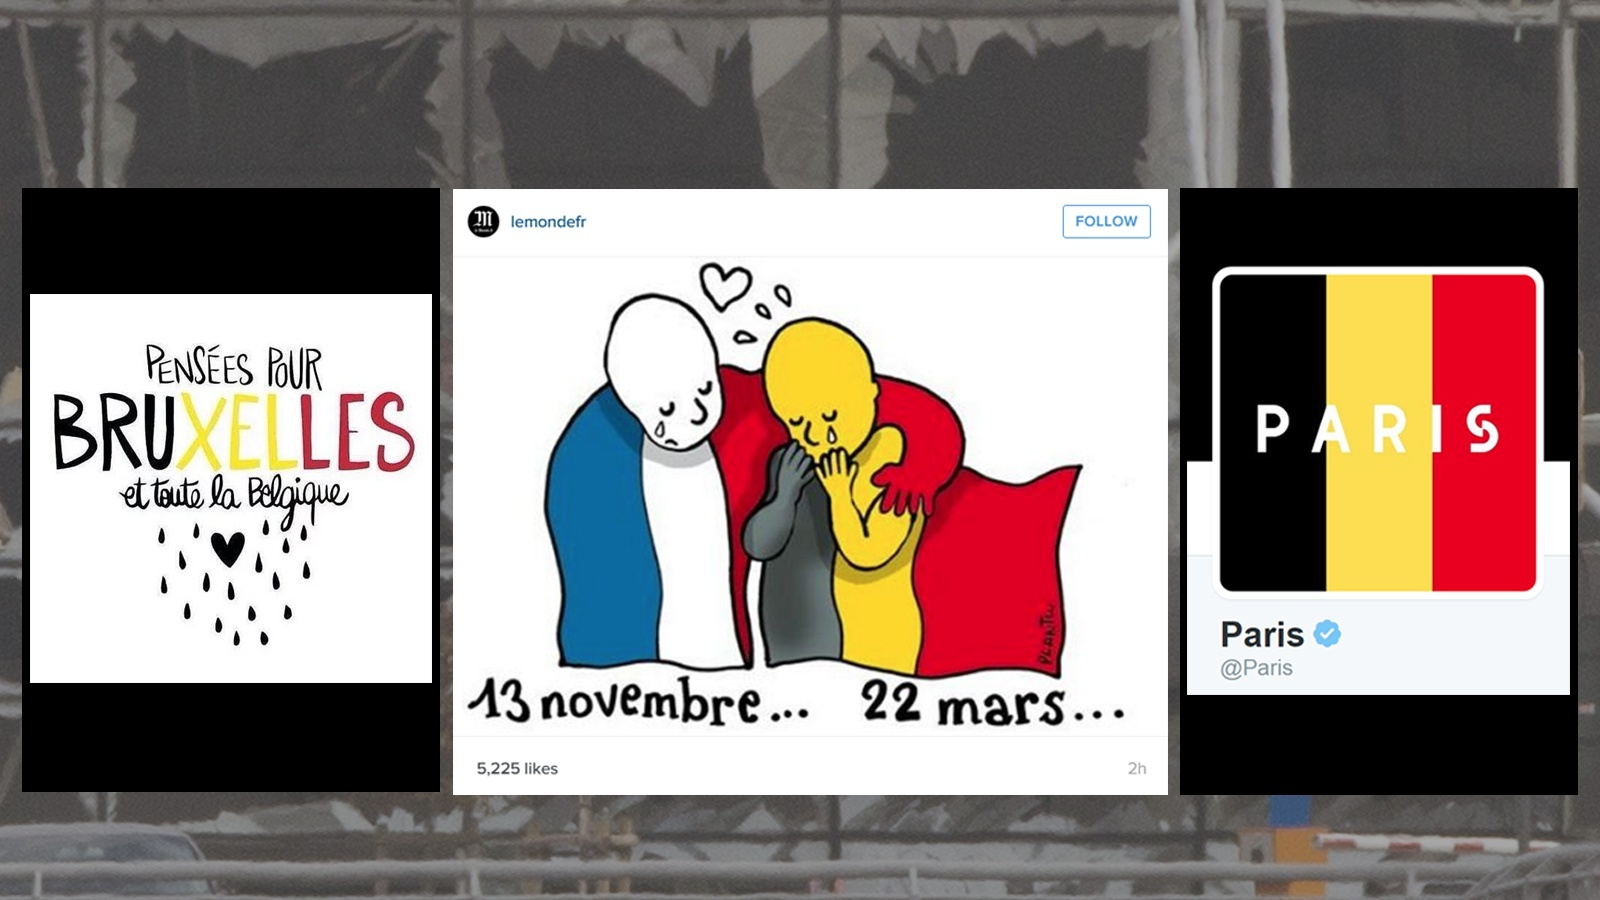 Composite of some of the images being shared on social media to support Belgium